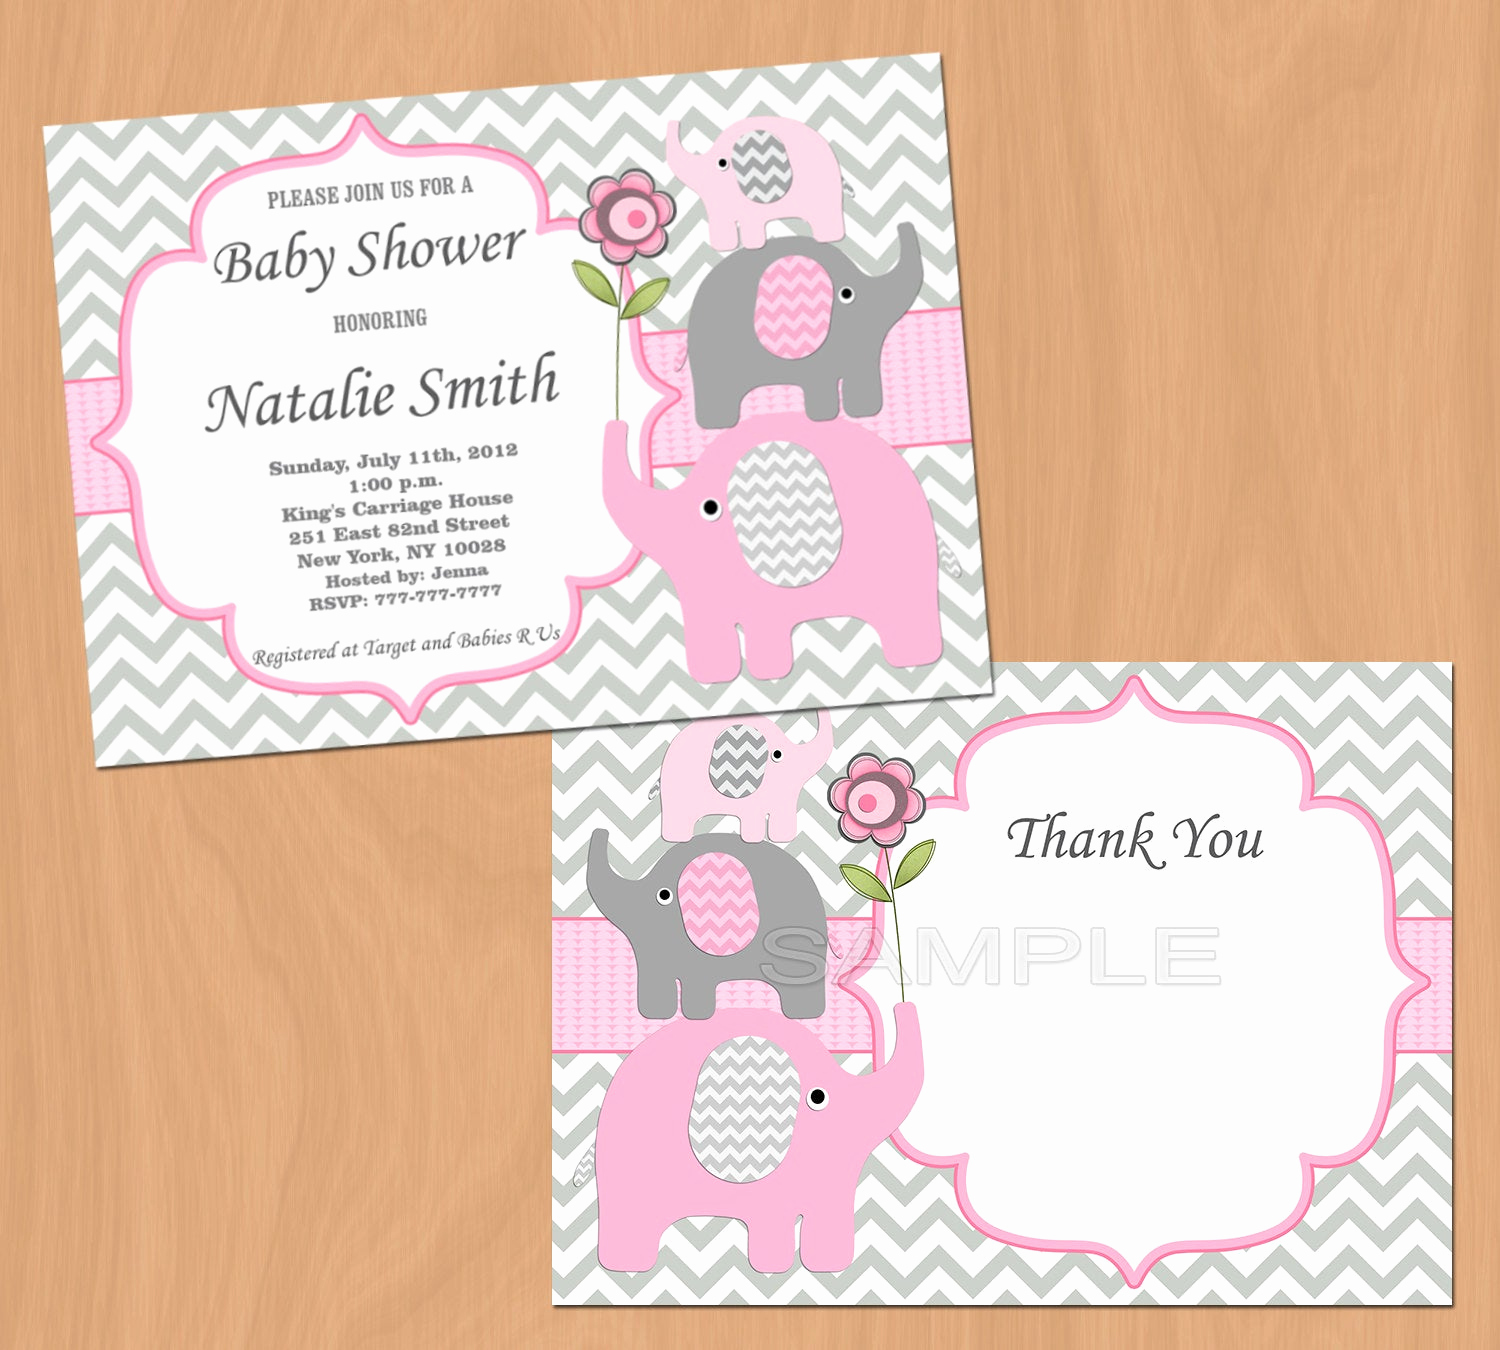 Elephant Baby Shower Invitation Inspirational Girl Baby Shower Invitation Elephant Baby Shower Invitation